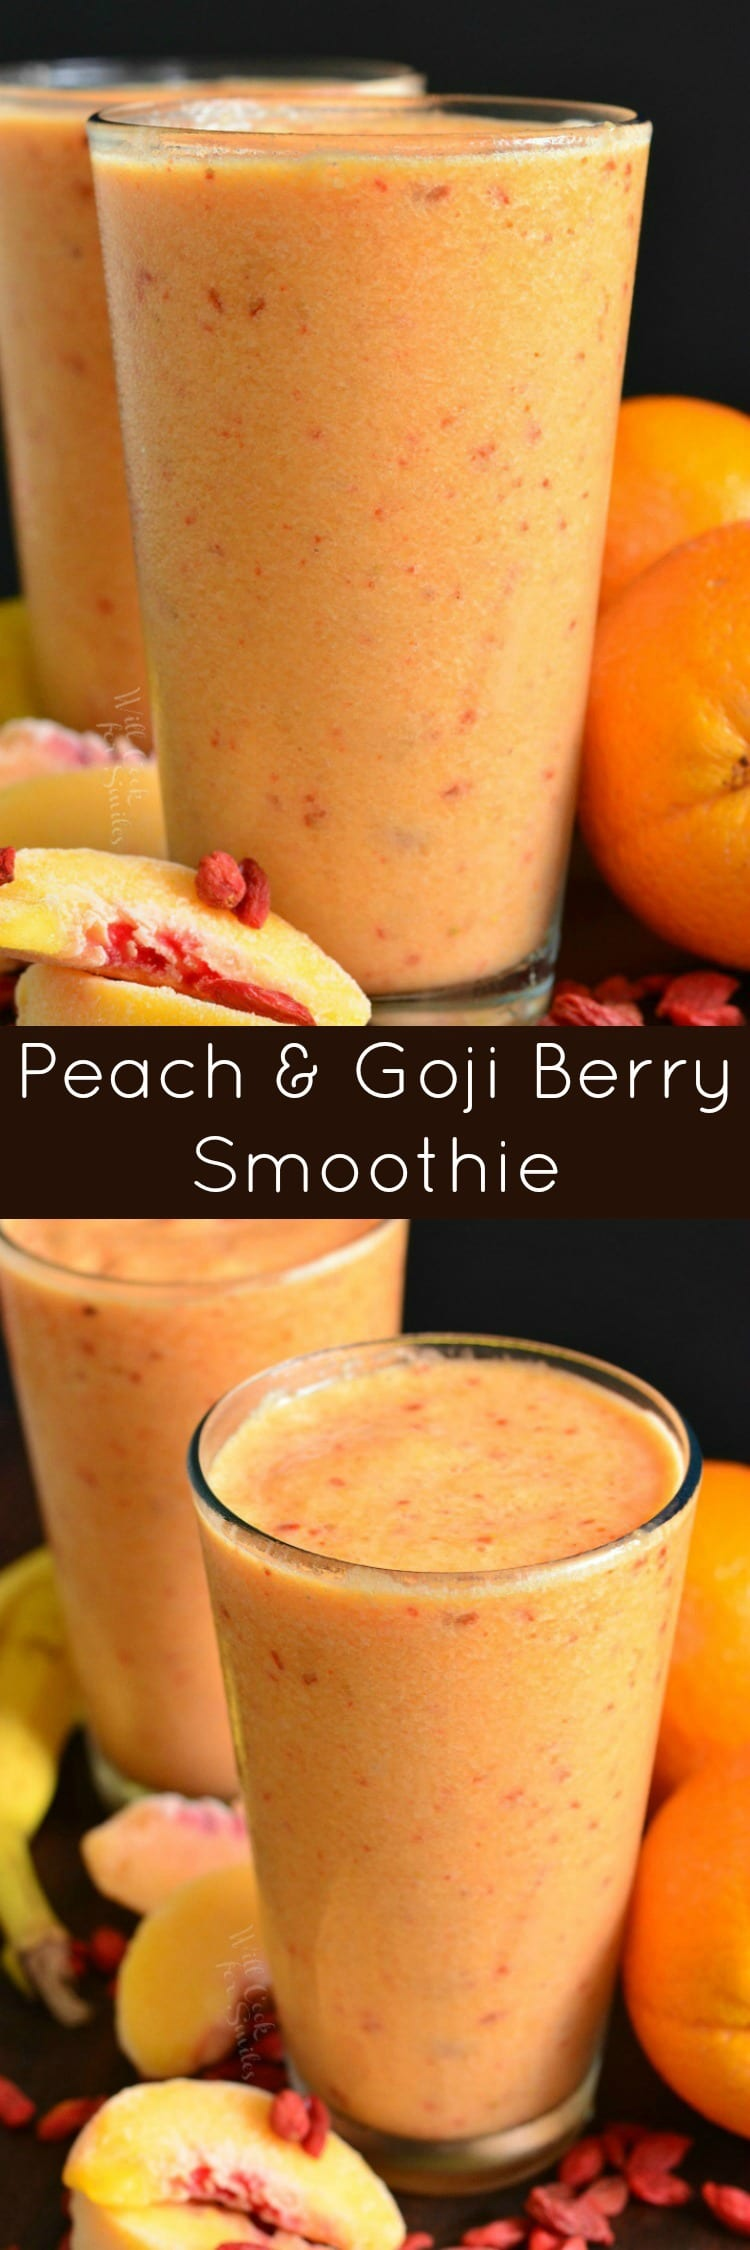 Creamy Peach and Goji Berry Smoothie. This smoothie is loaded with peaches, Goji berries, banana, Silk Almond Milk, and a splash of orange juice.